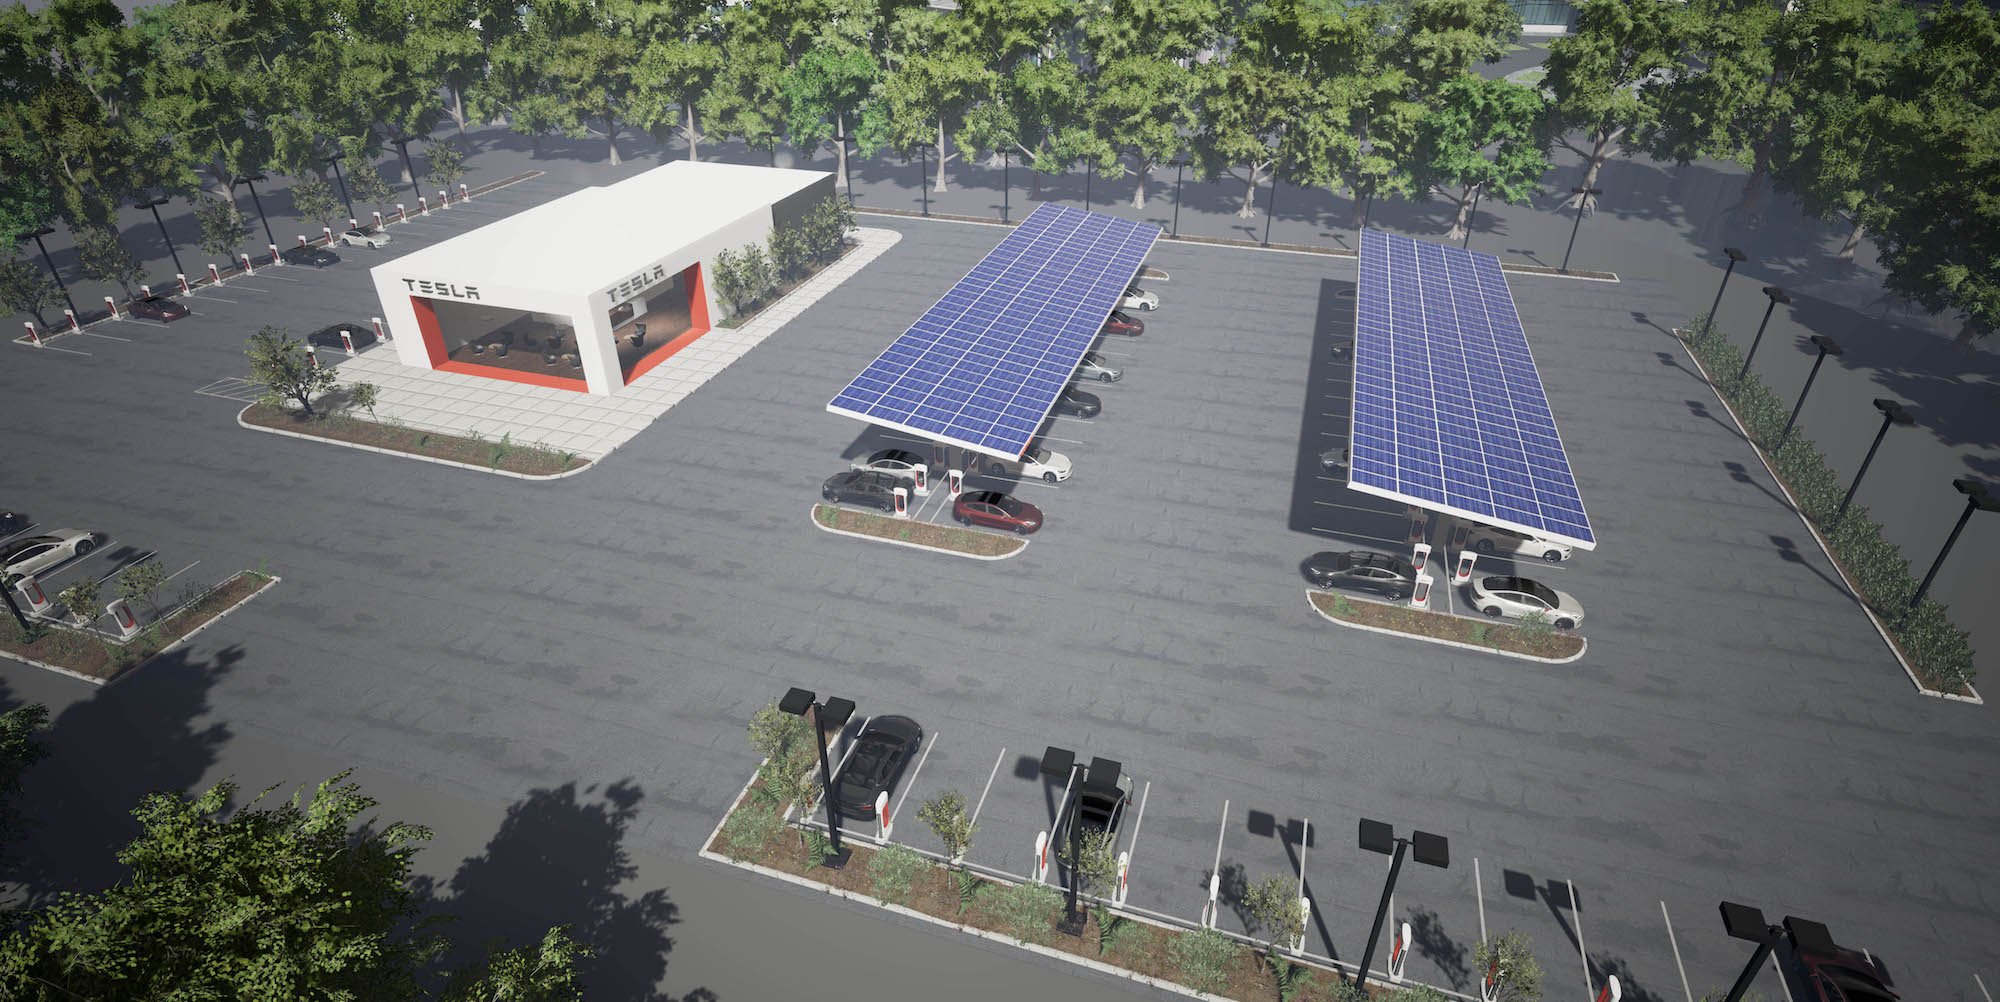 | Source: Tesla | A future model of a Supercharger location that will hold dozens of Tesla Vehicles